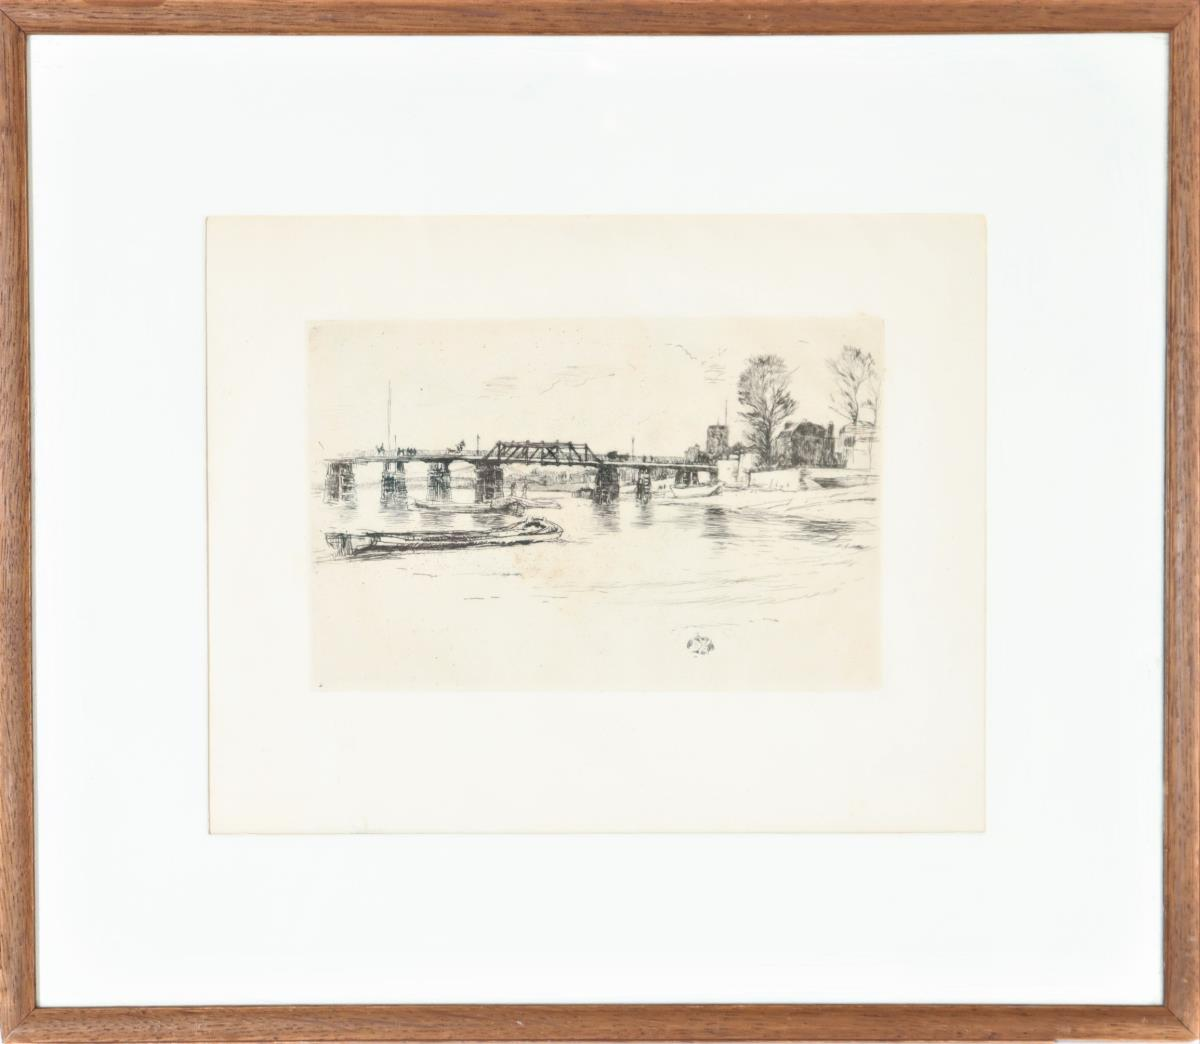 James Abbott McNeill Whistler (1834-1903) Etching - Image 2 of 4